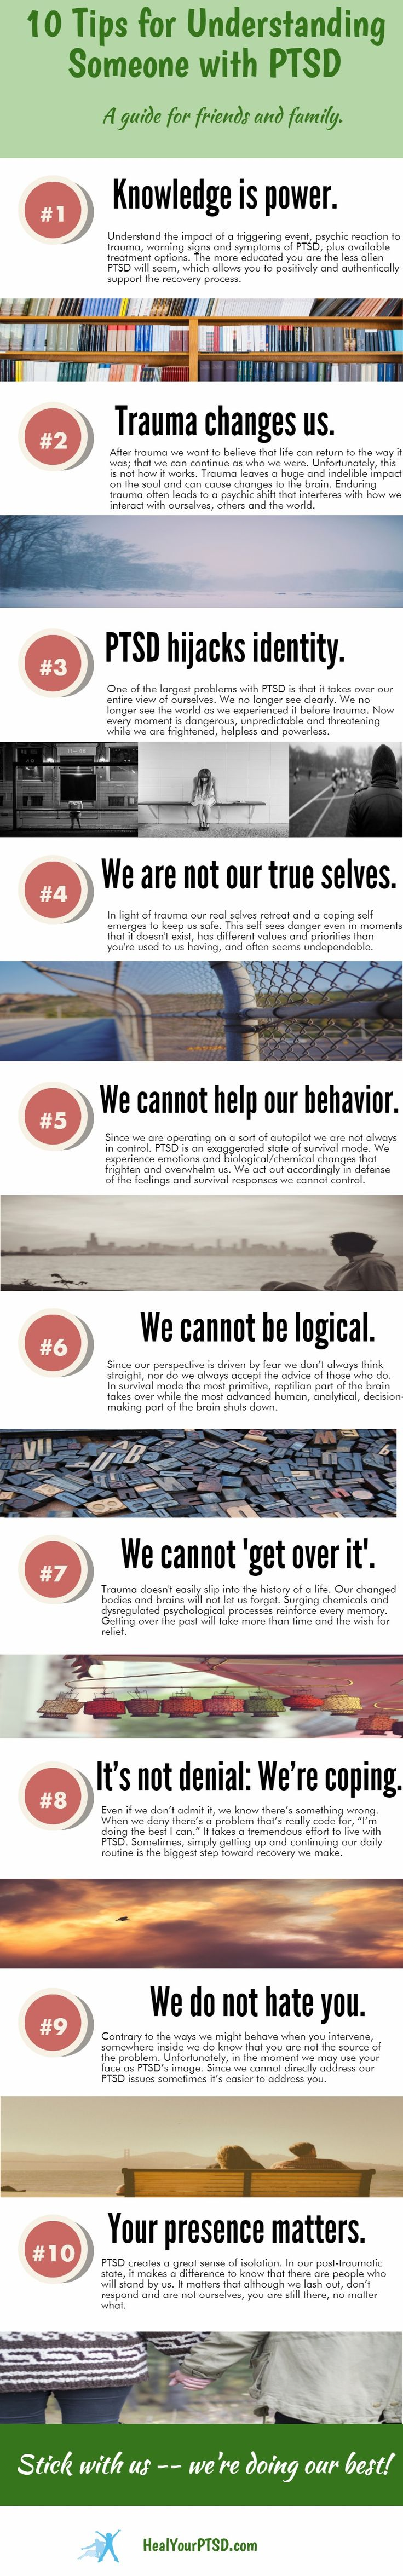 Interesting Outlook on PTSD & its effects. Instead of judging, love them…